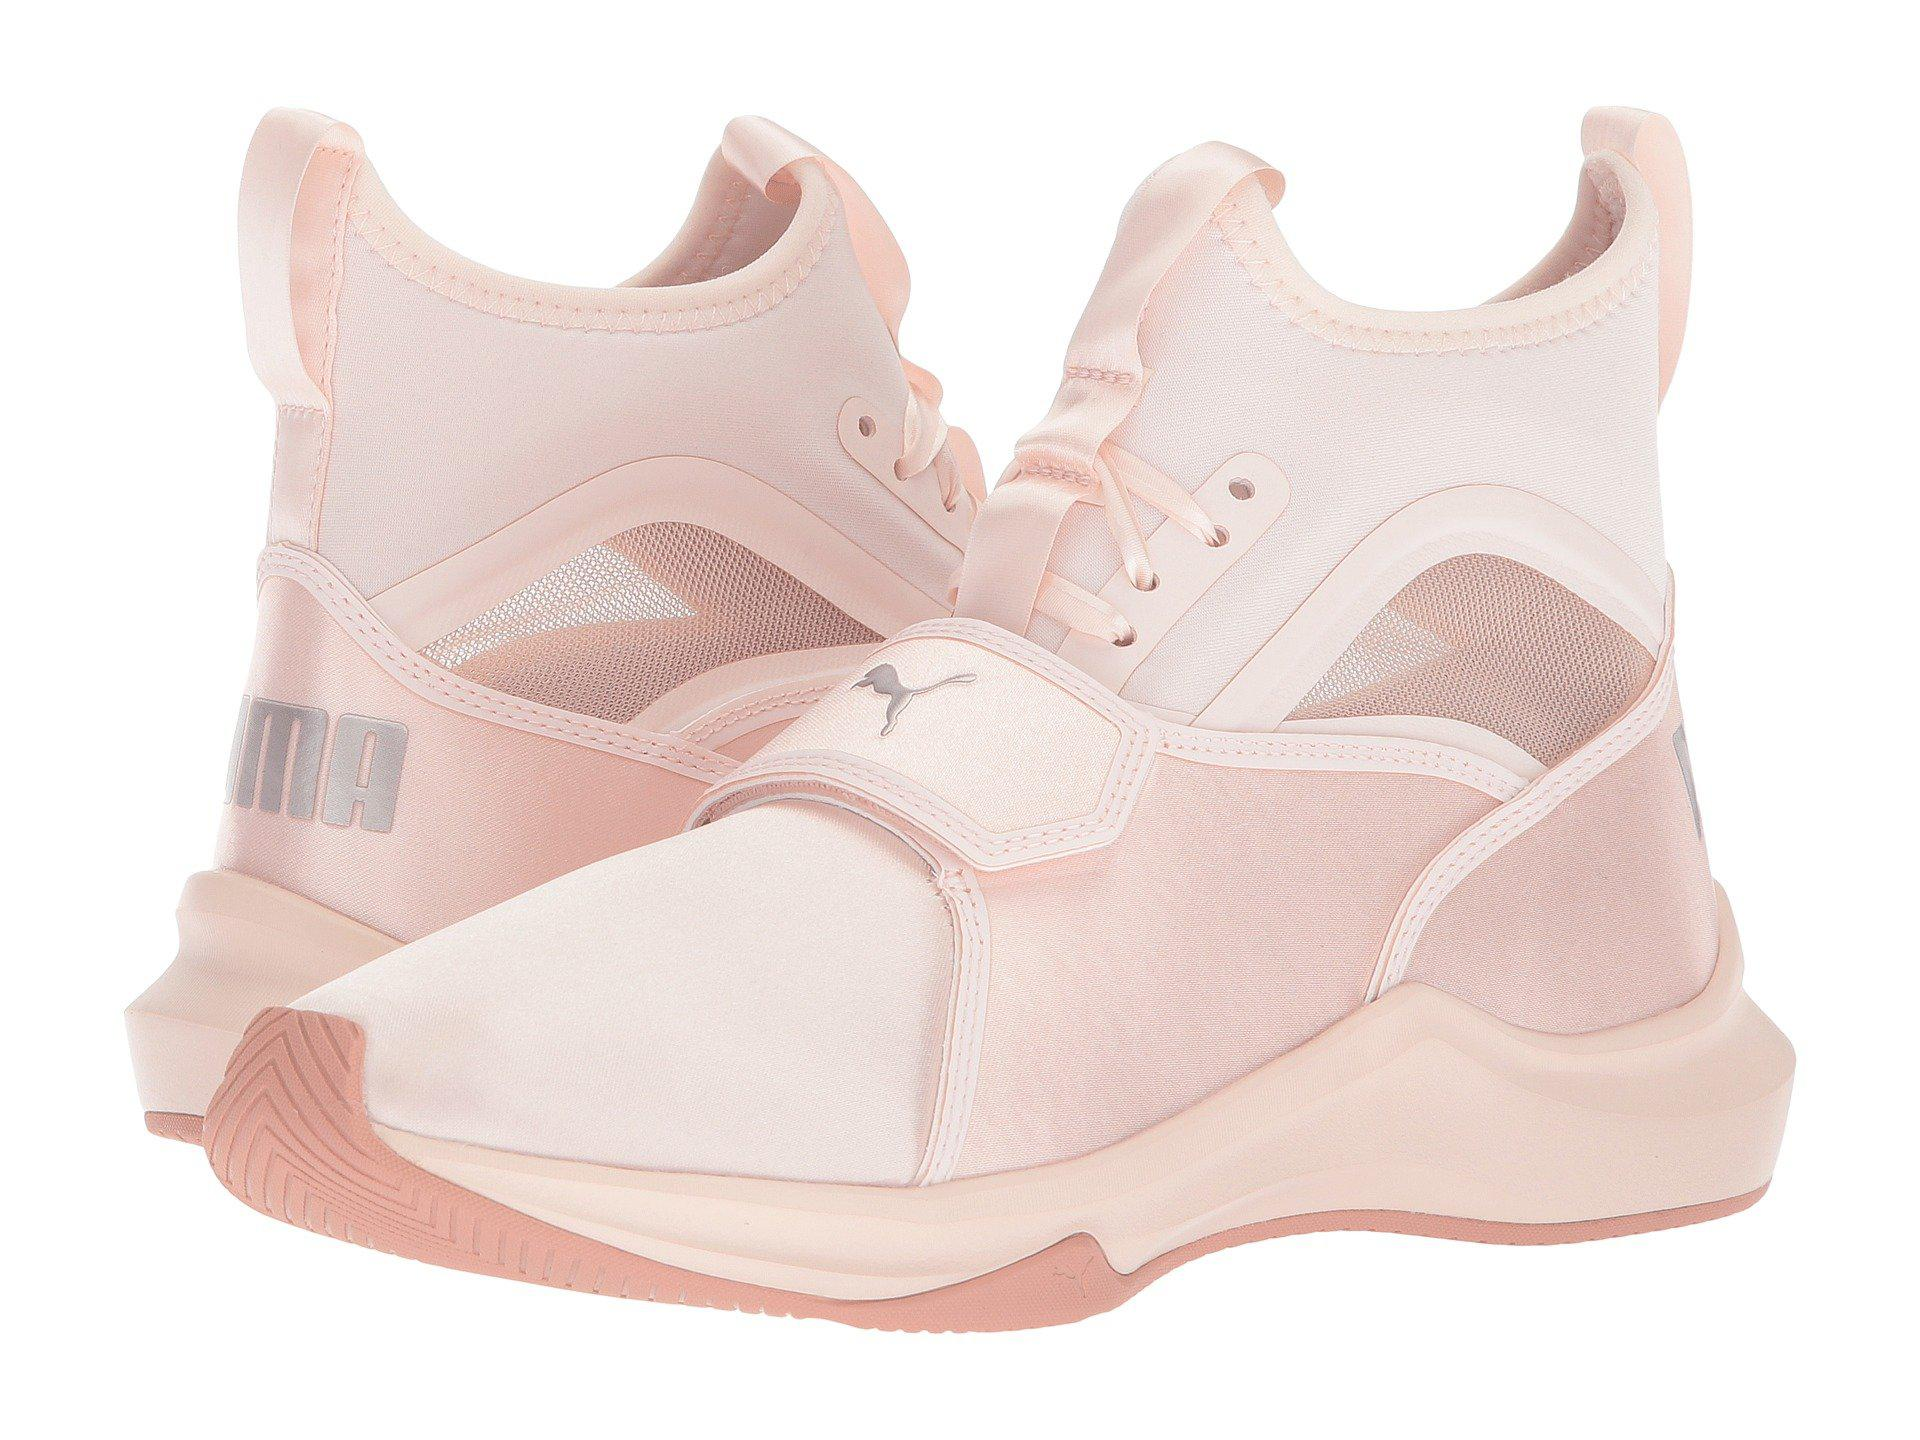 Lyst - PUMA Phenom Satin Ep (pearl pearl) Women s Shoes in Pink 40f0d94a8